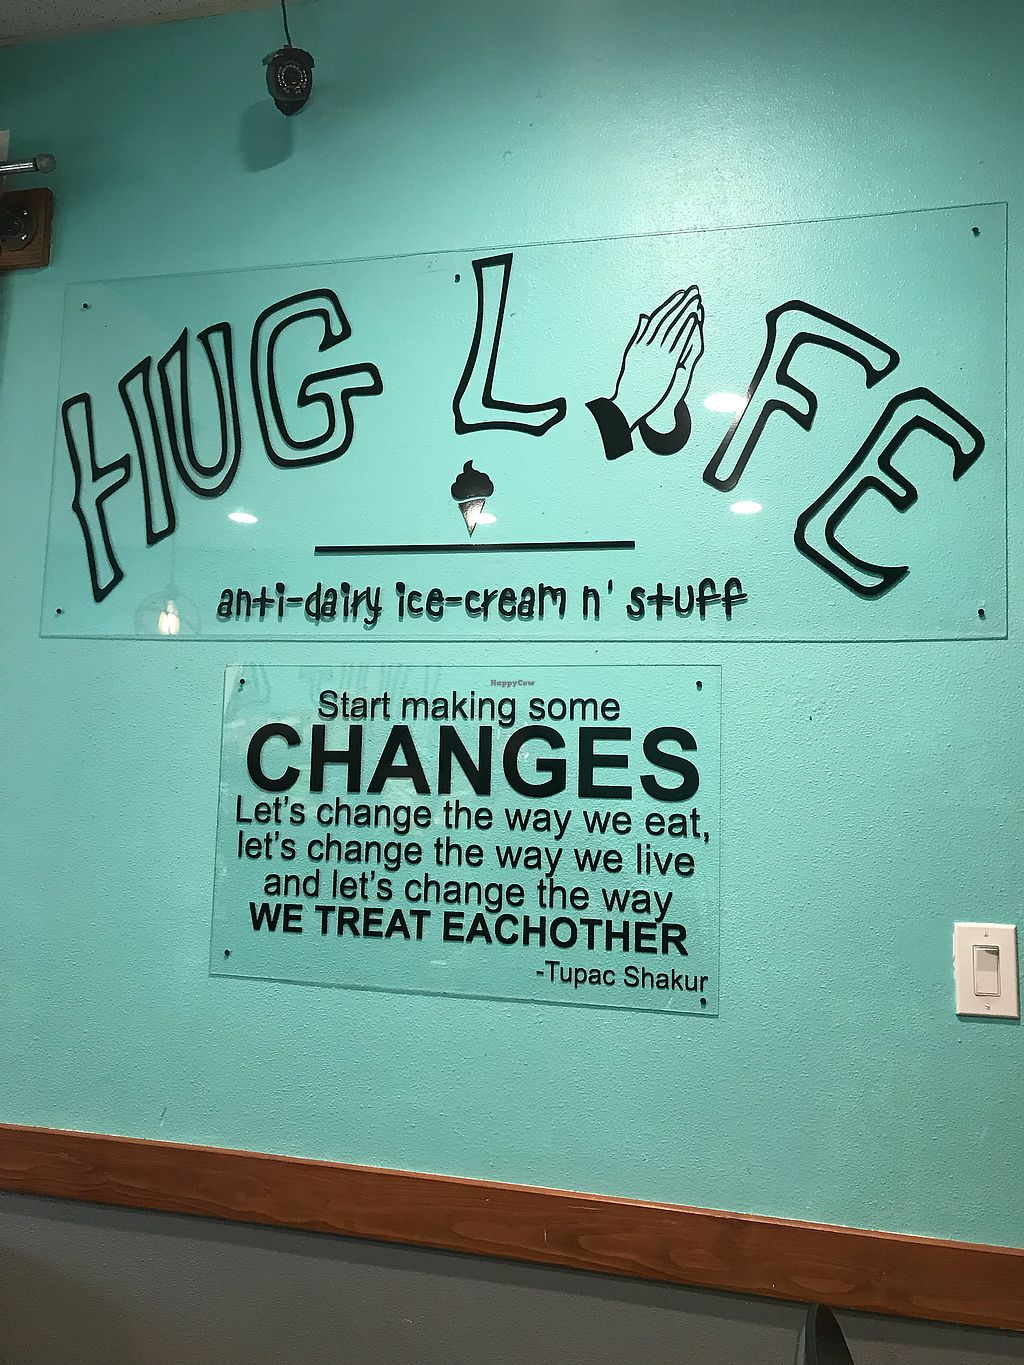 """Photo of Hug Life  by <a href=""""/members/profile/Cstar"""">Cstar</a> <br/>Make a change for the good <br/> February 17, 2018  - <a href='/contact/abuse/image/82555/360211'>Report</a>"""